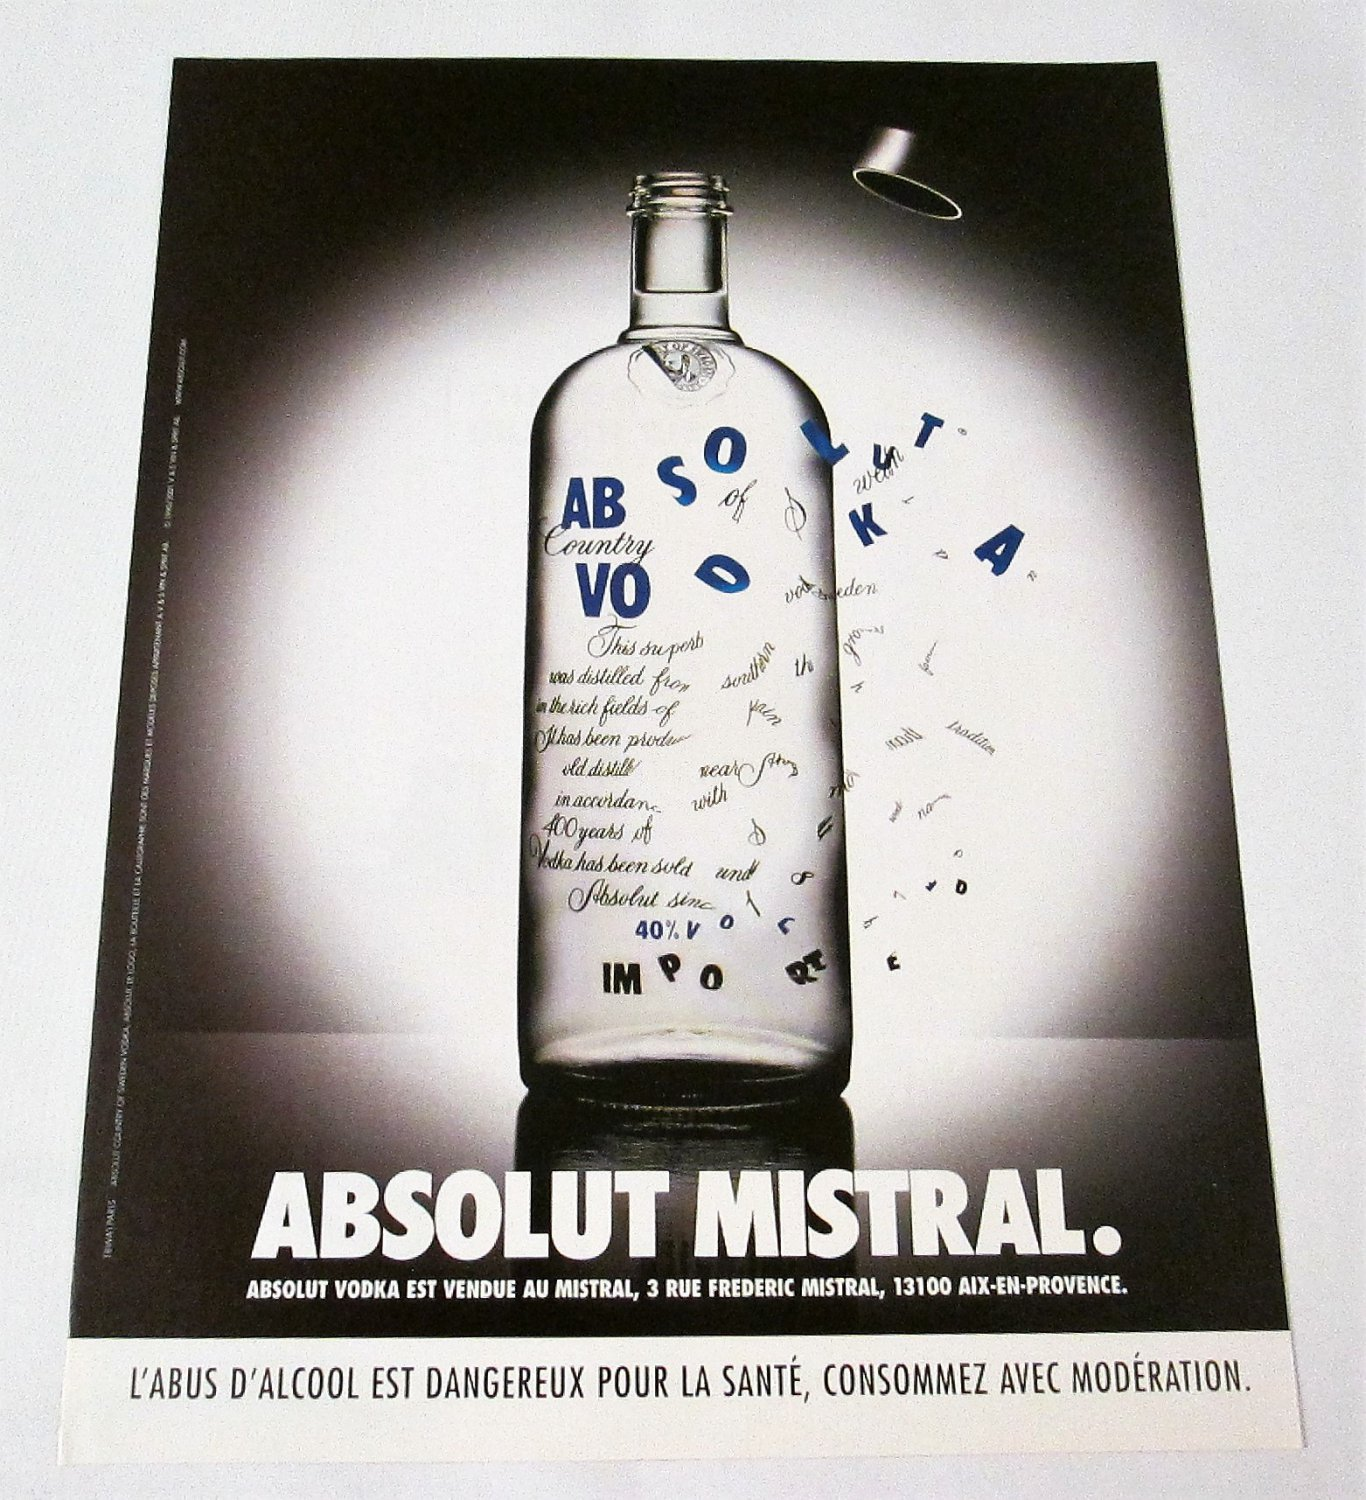 ABSOLUT MISTRAL French Vodka Magazine Ad NOT EASY TO FIND!